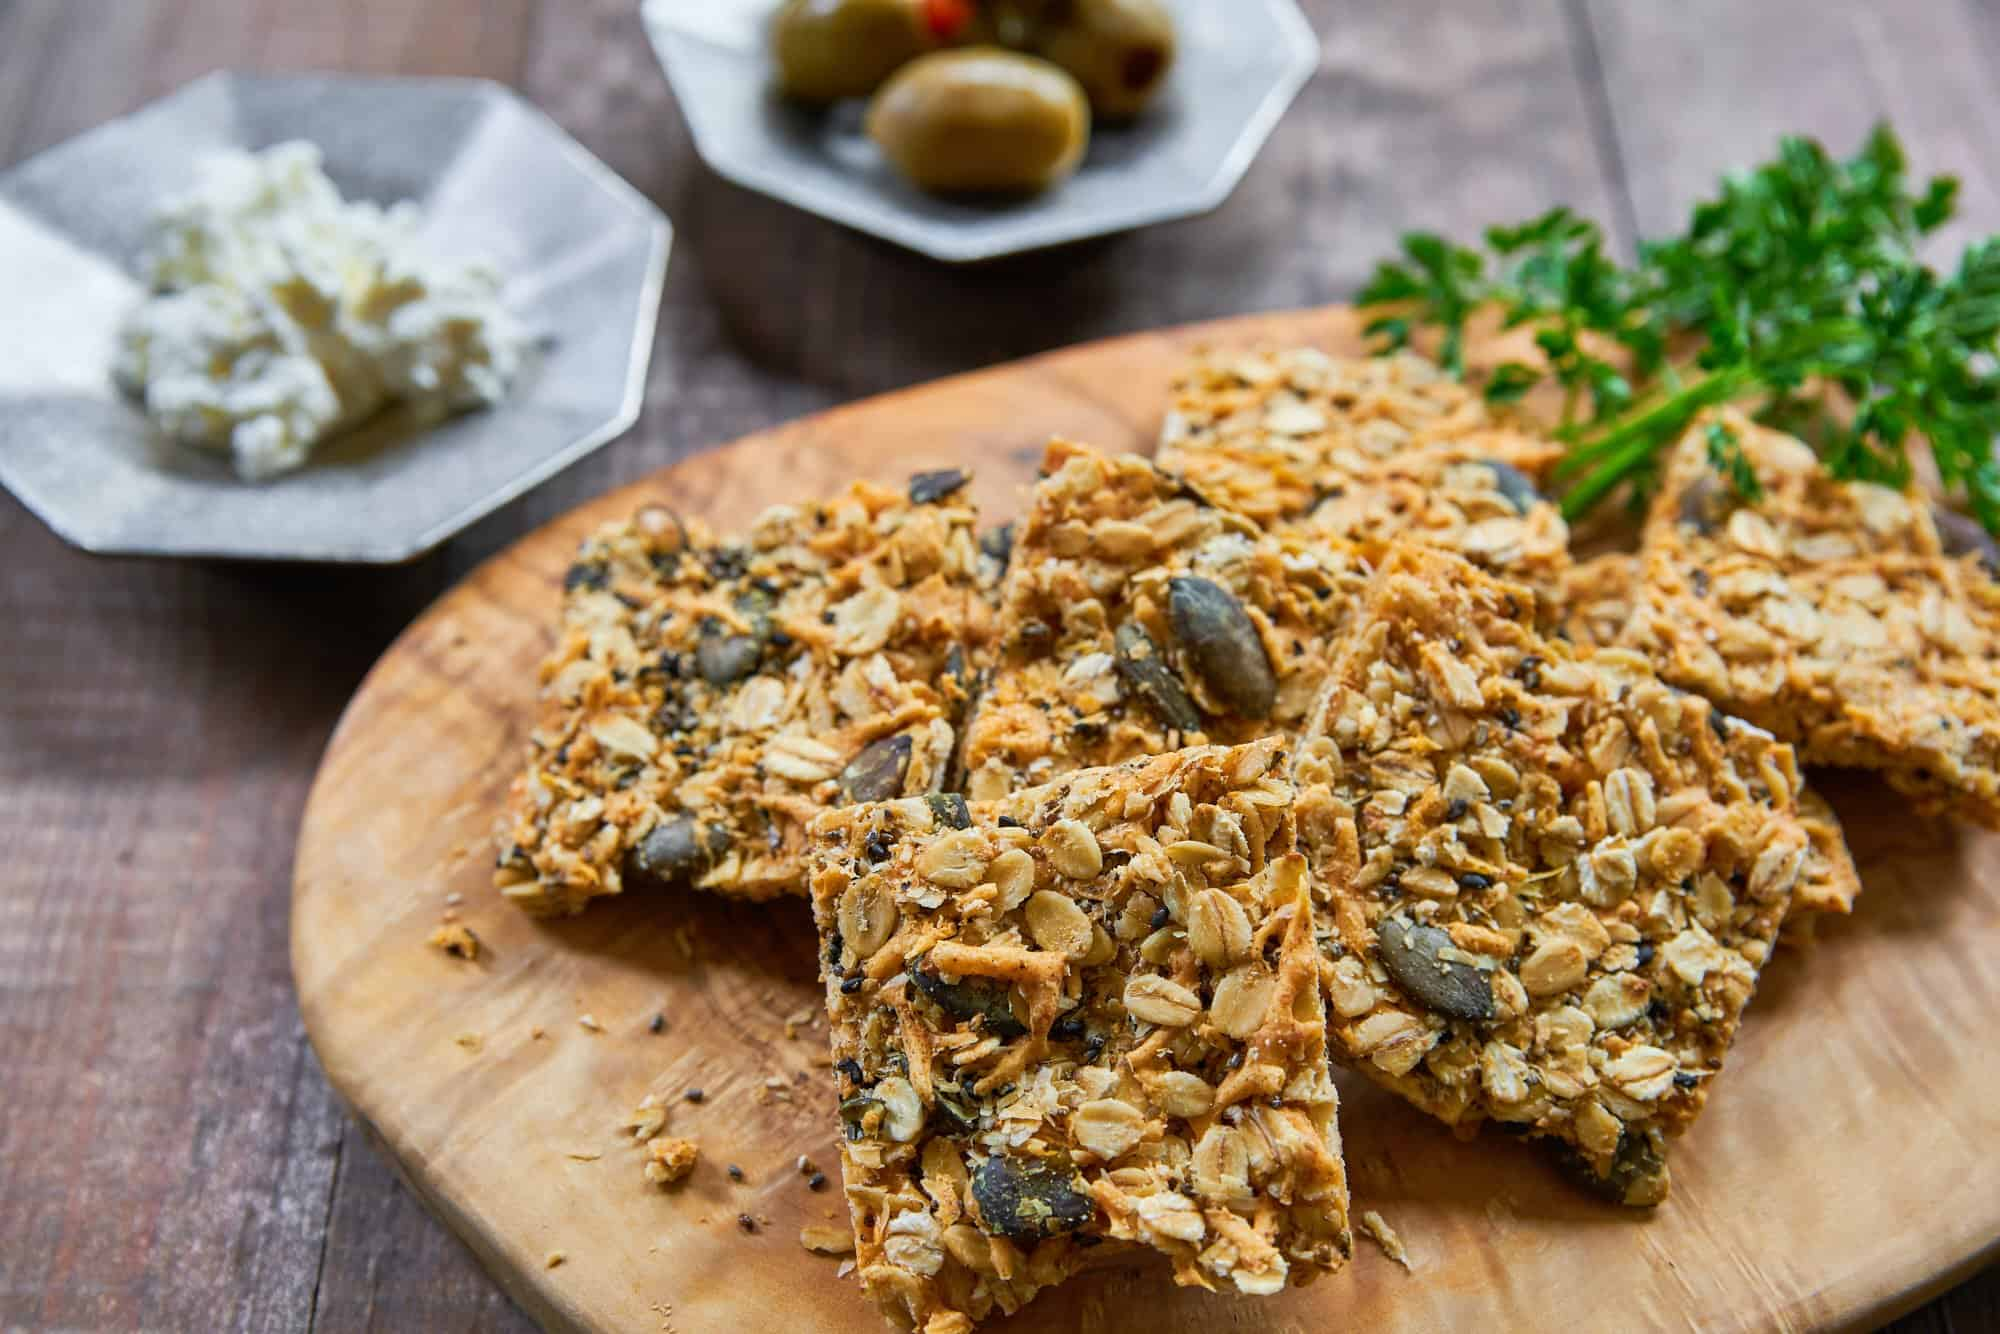 Cheesy and delicious savory granola bars are loaded with cheddar, parmesan, oats, pumpkin seeds, sesame seeds, and chia seeds and baked until crisp.